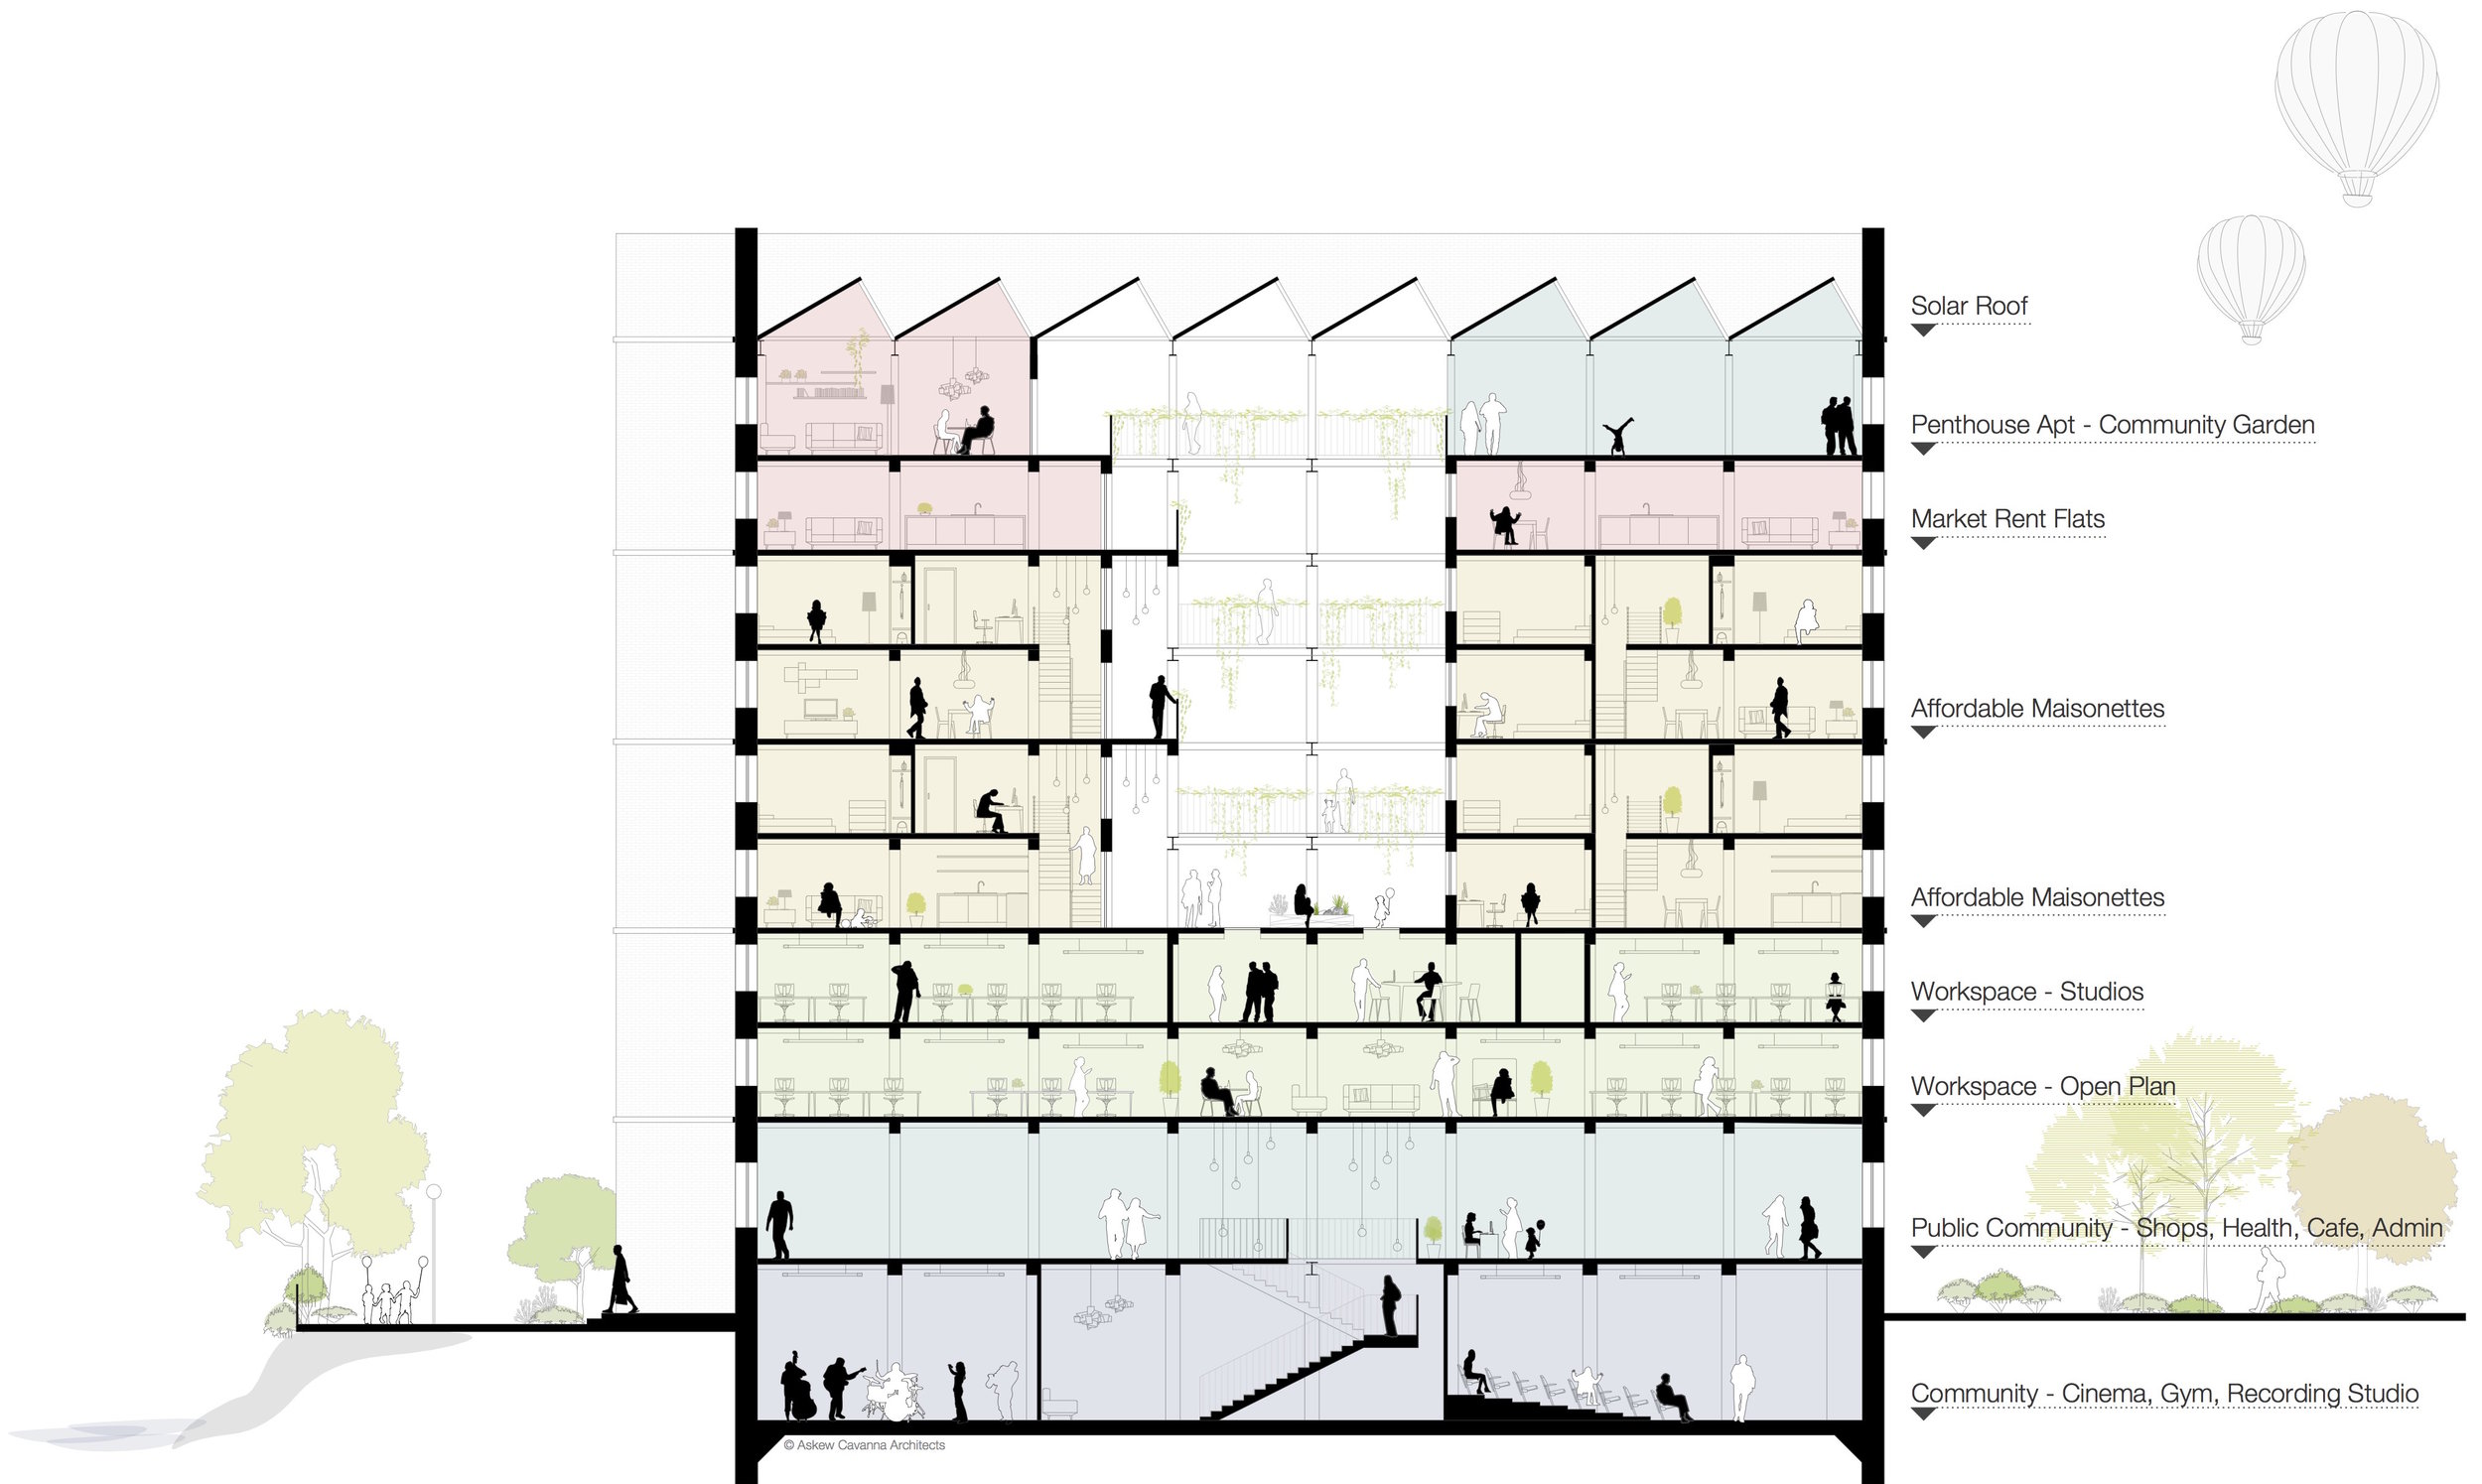 Cross section of mixed use development at A Bond